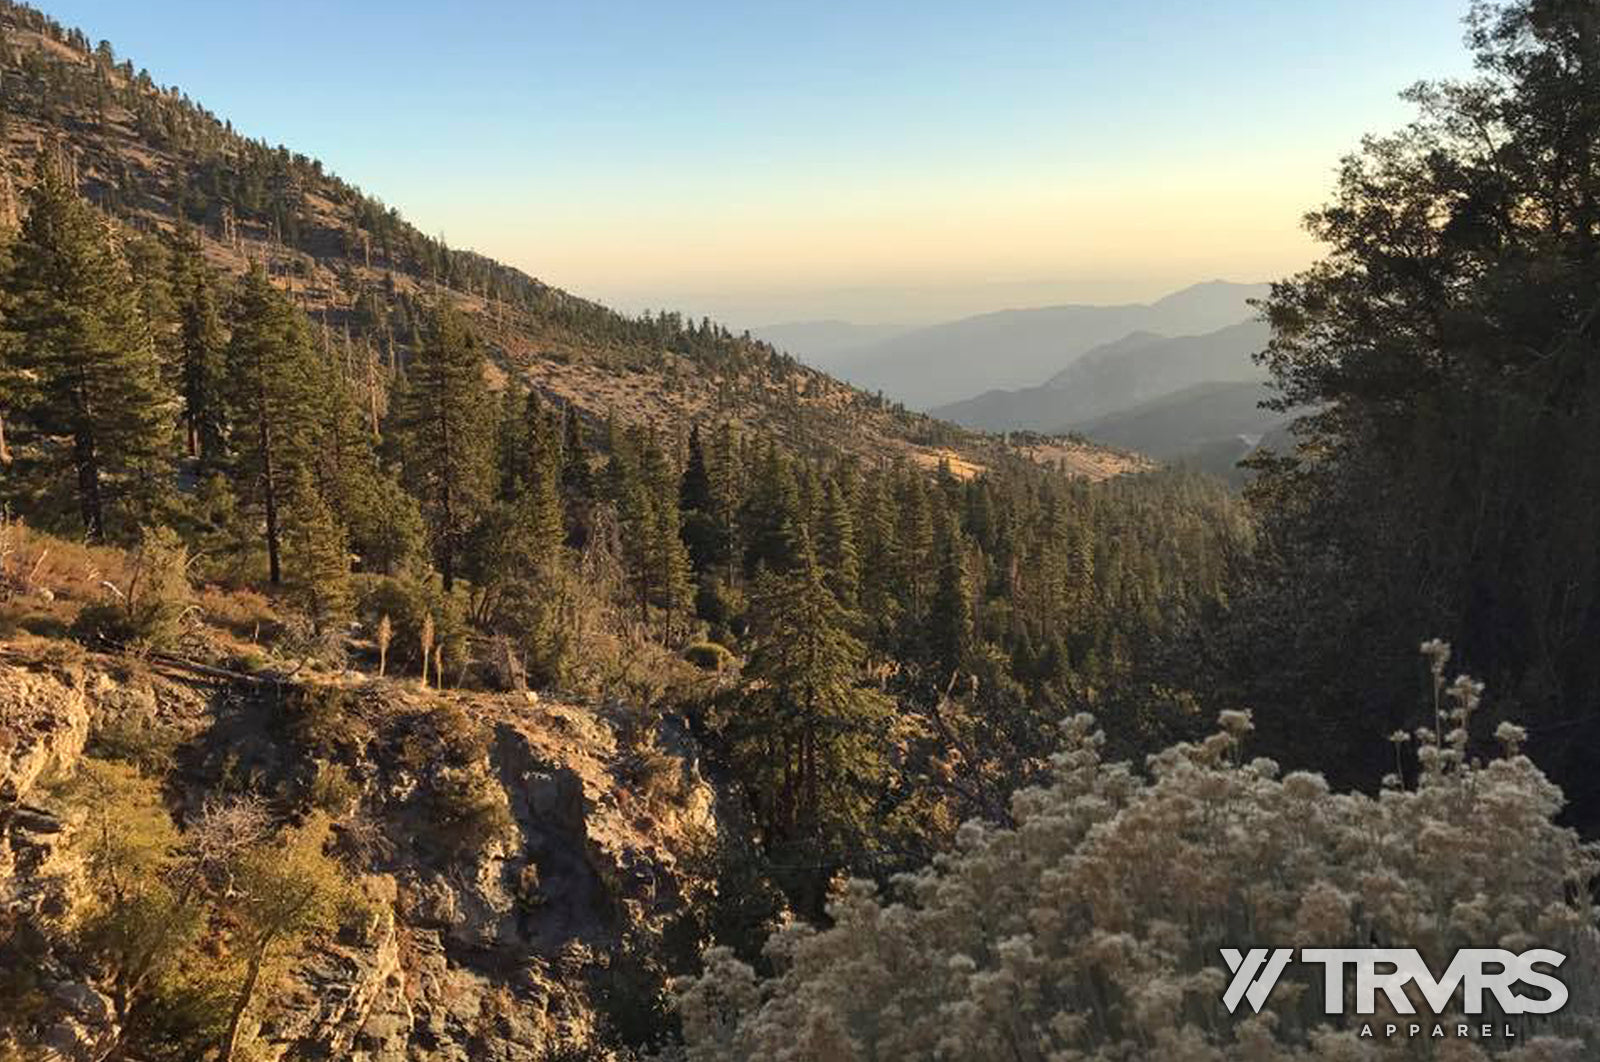 Crystal Lake Campground View San gabriel Mountain Wilderness | TRVRS APPAREL